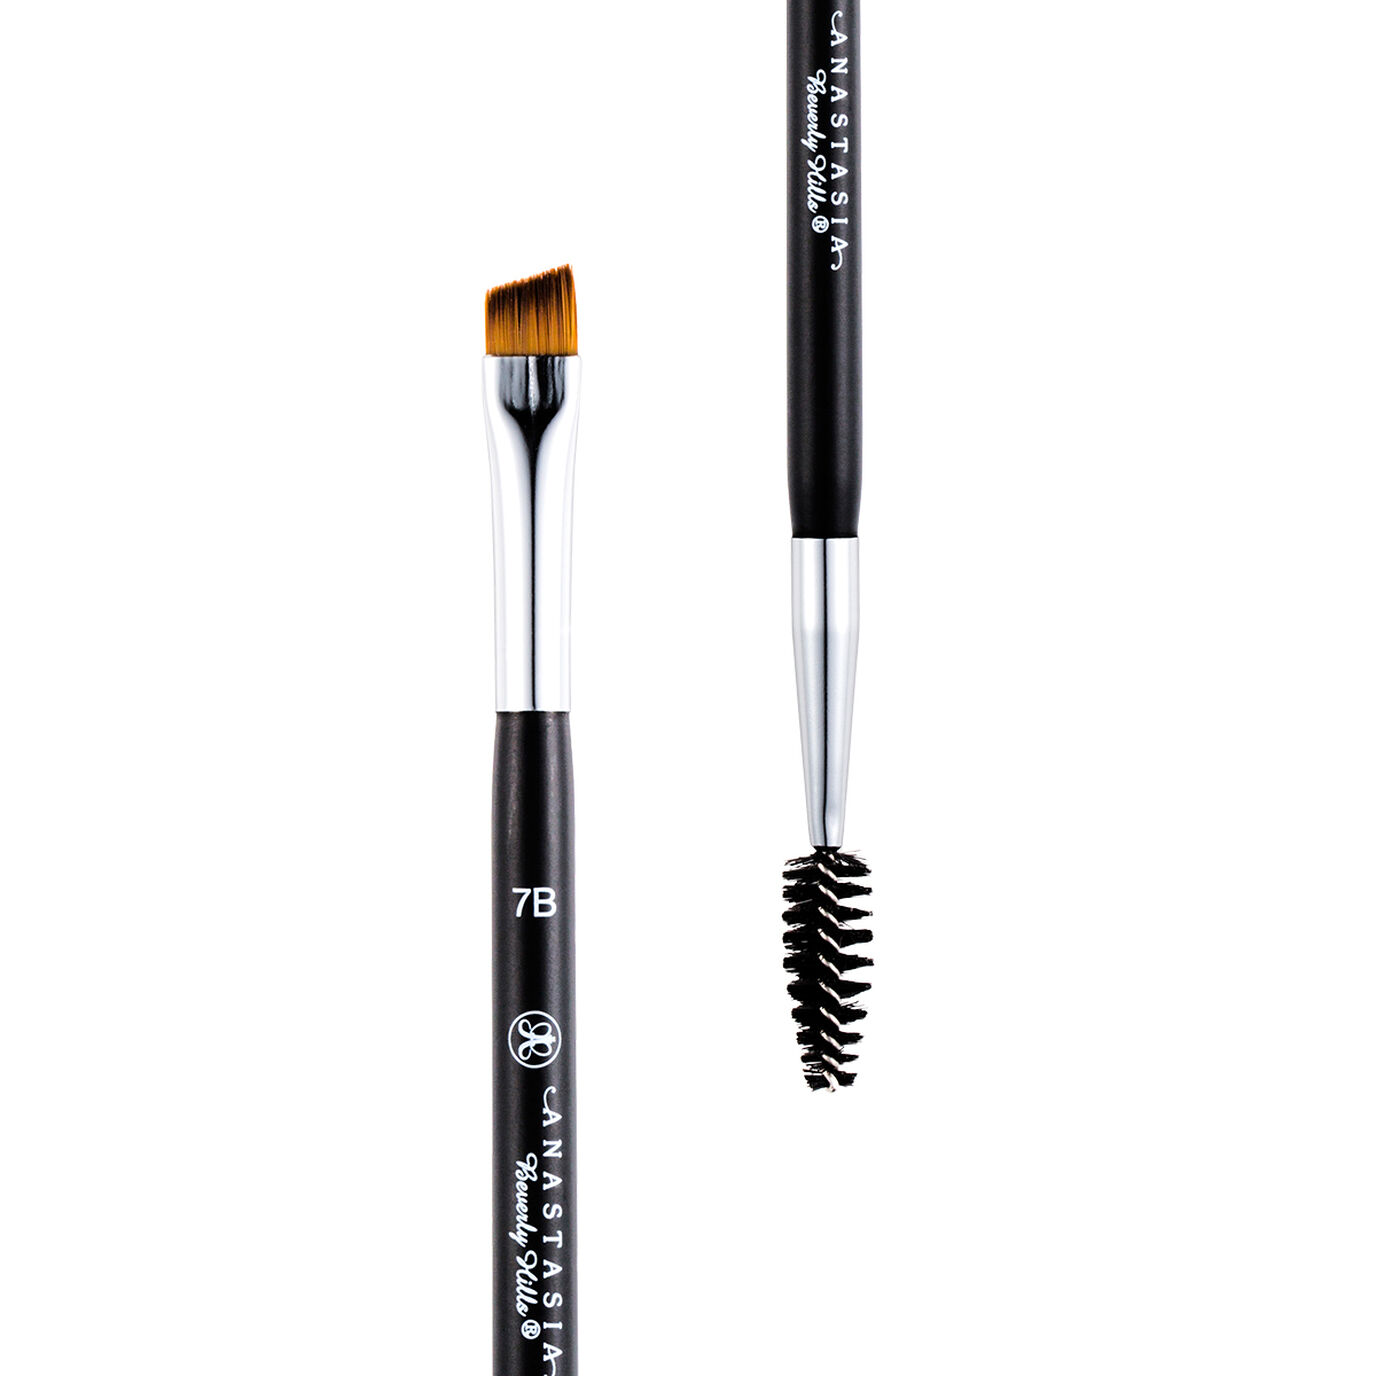 Brow Powder Duo + Brush 7B